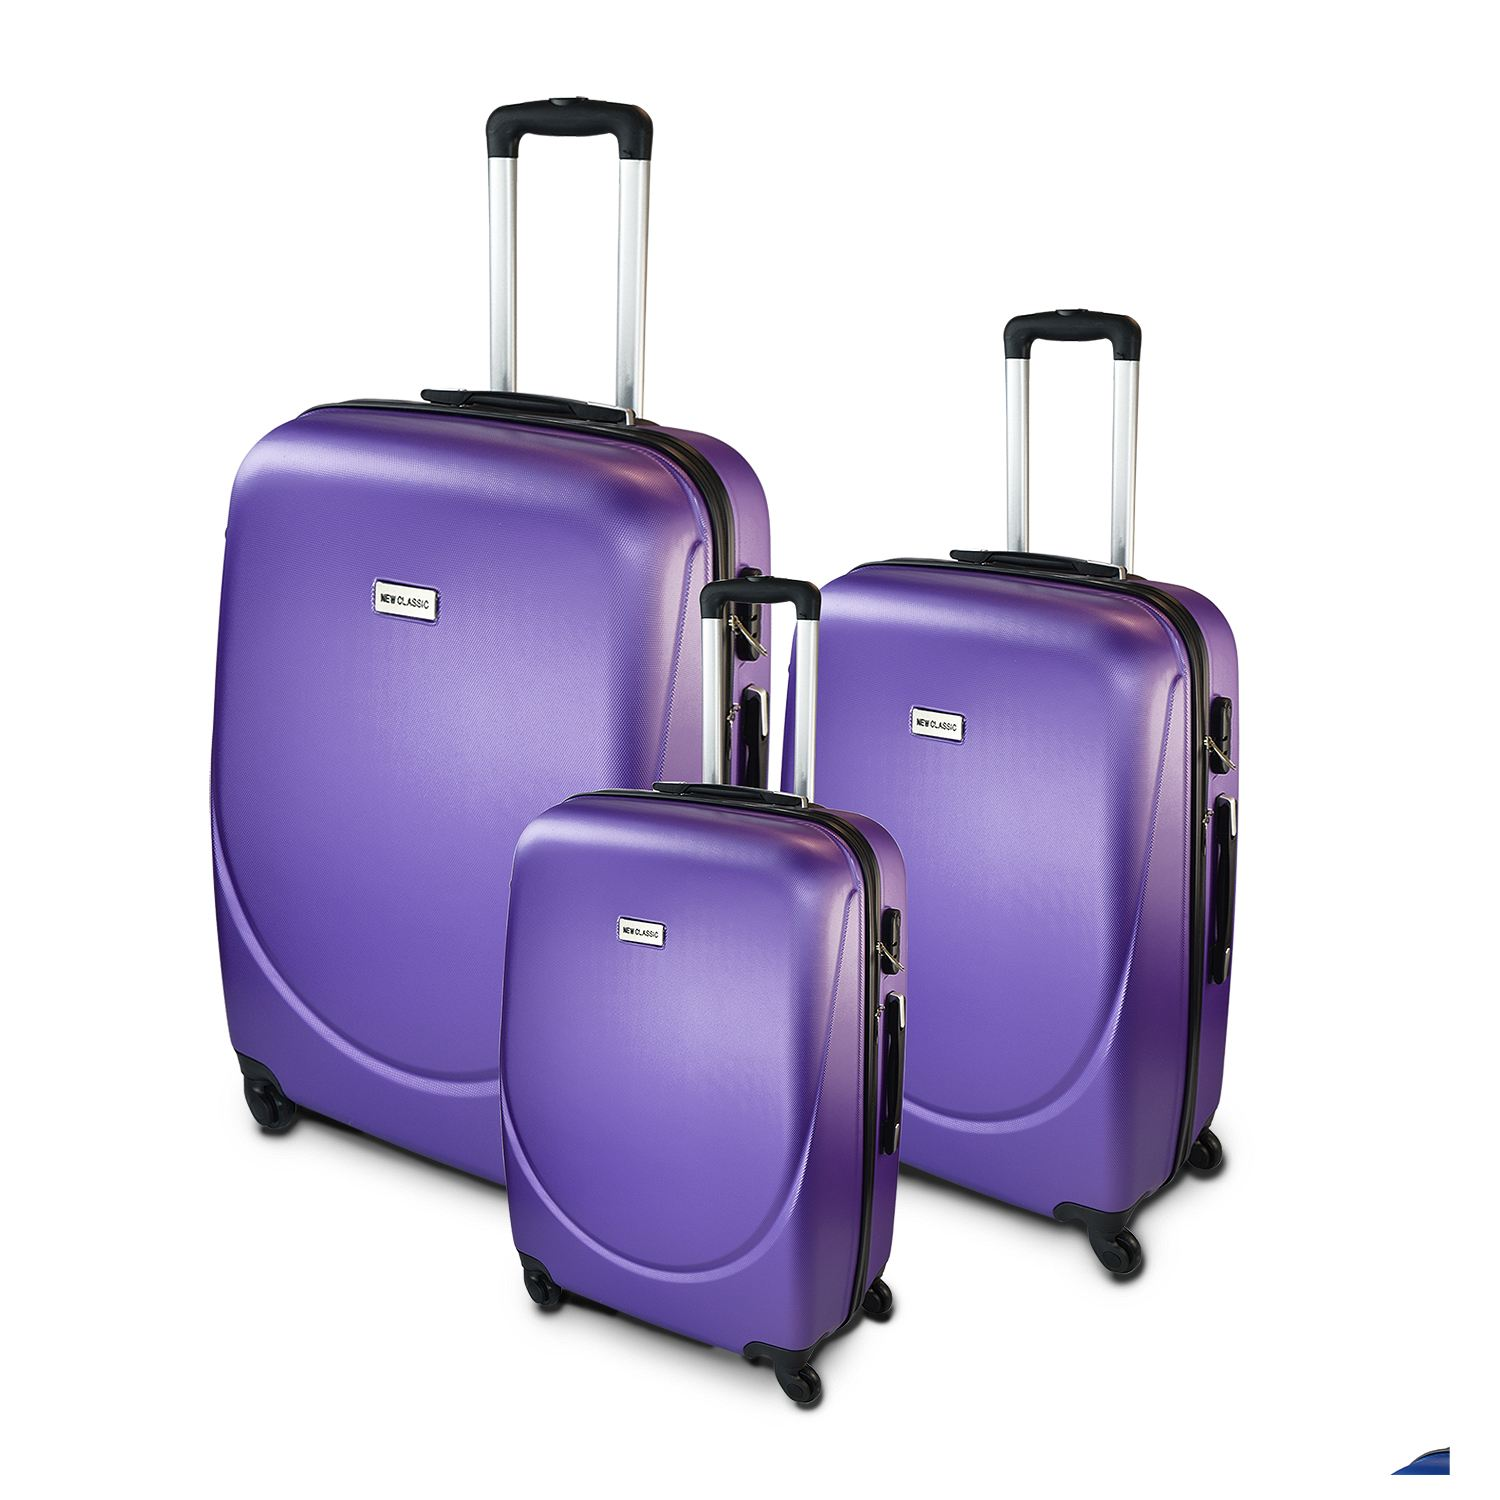 3pc hard shell suitcase luggage set 4 wheeled trolley abs. Black Bedroom Furniture Sets. Home Design Ideas